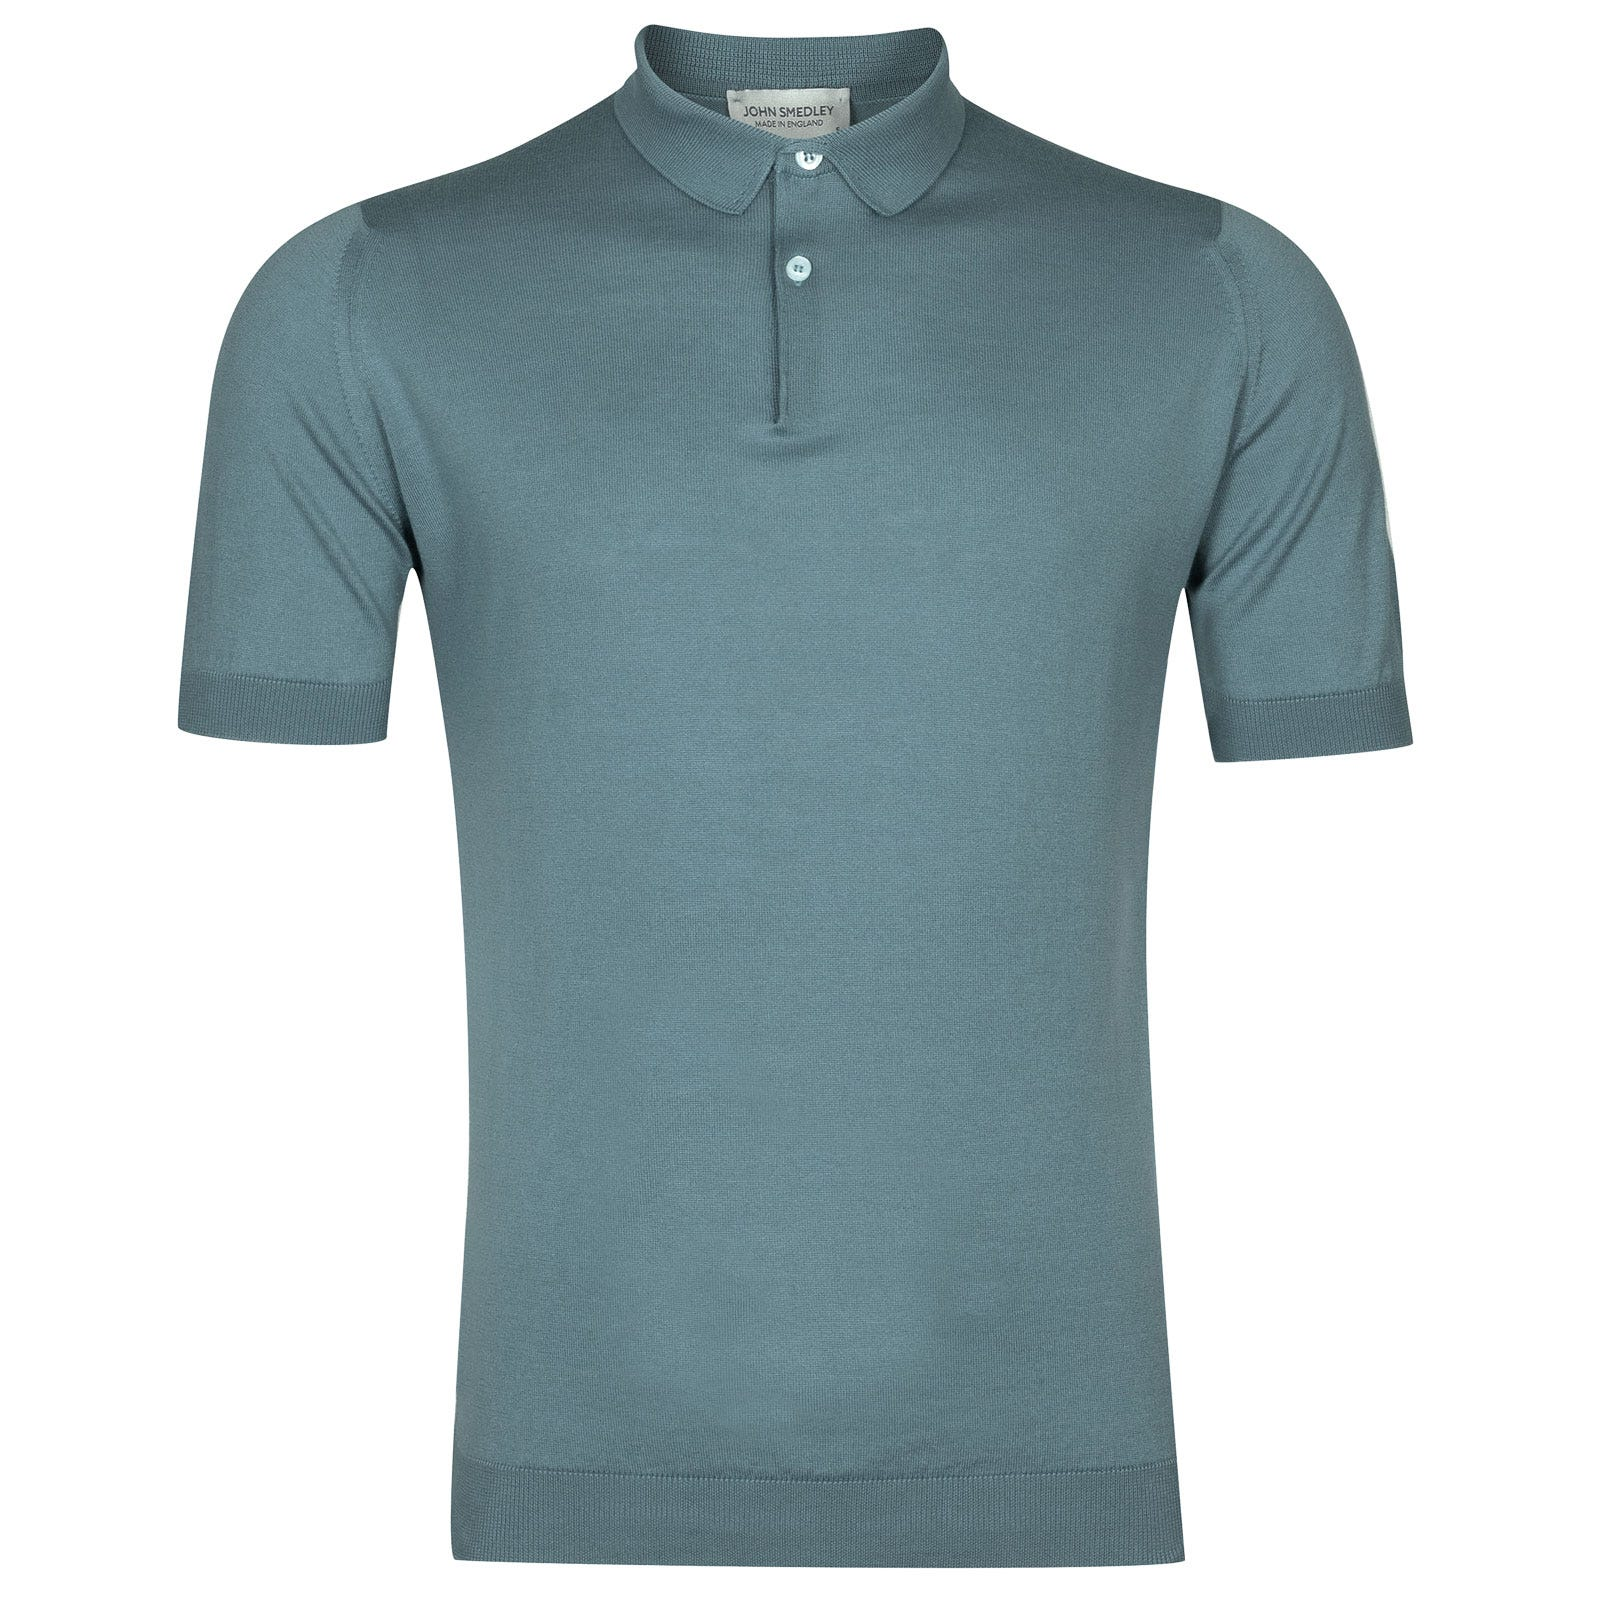 John Smedley rhodes Sea Island Cotton Shirt in Summit Blue-XL